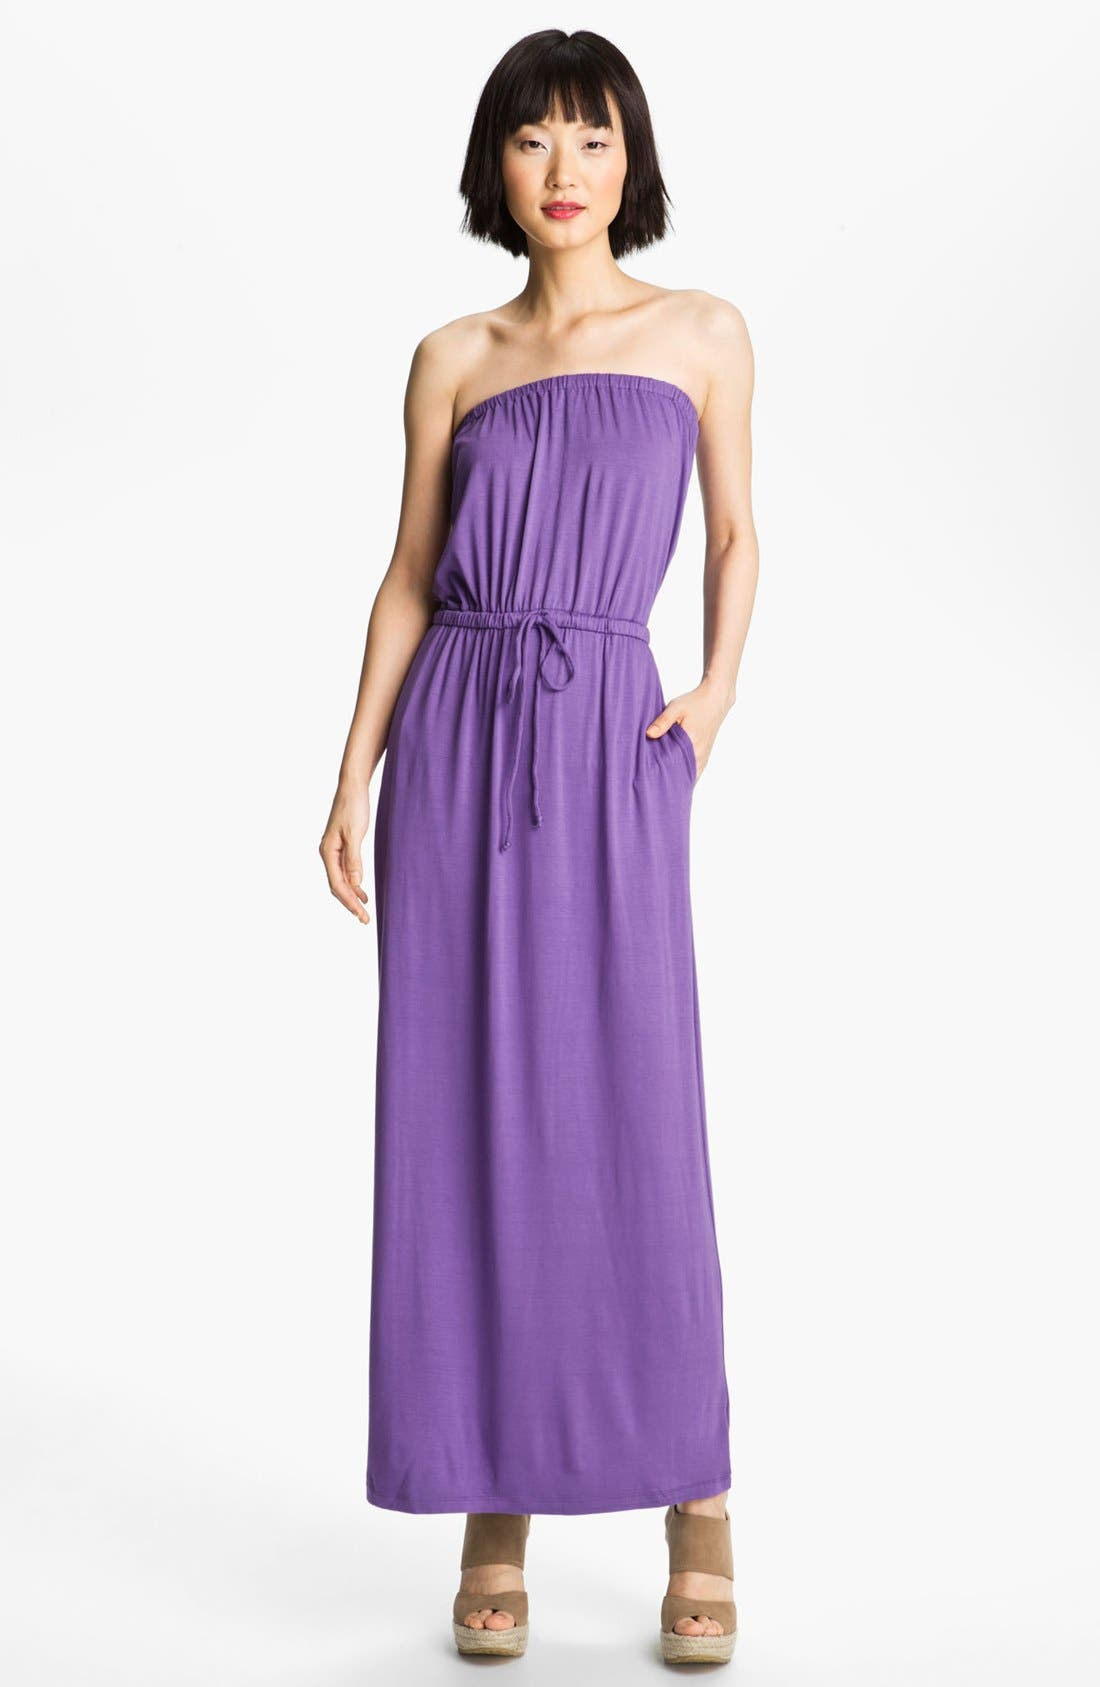 Alternate Image 1 Selected - Felicity & Coco Strapless Jersey Maxi Dress (Nordstrom Exclusive)